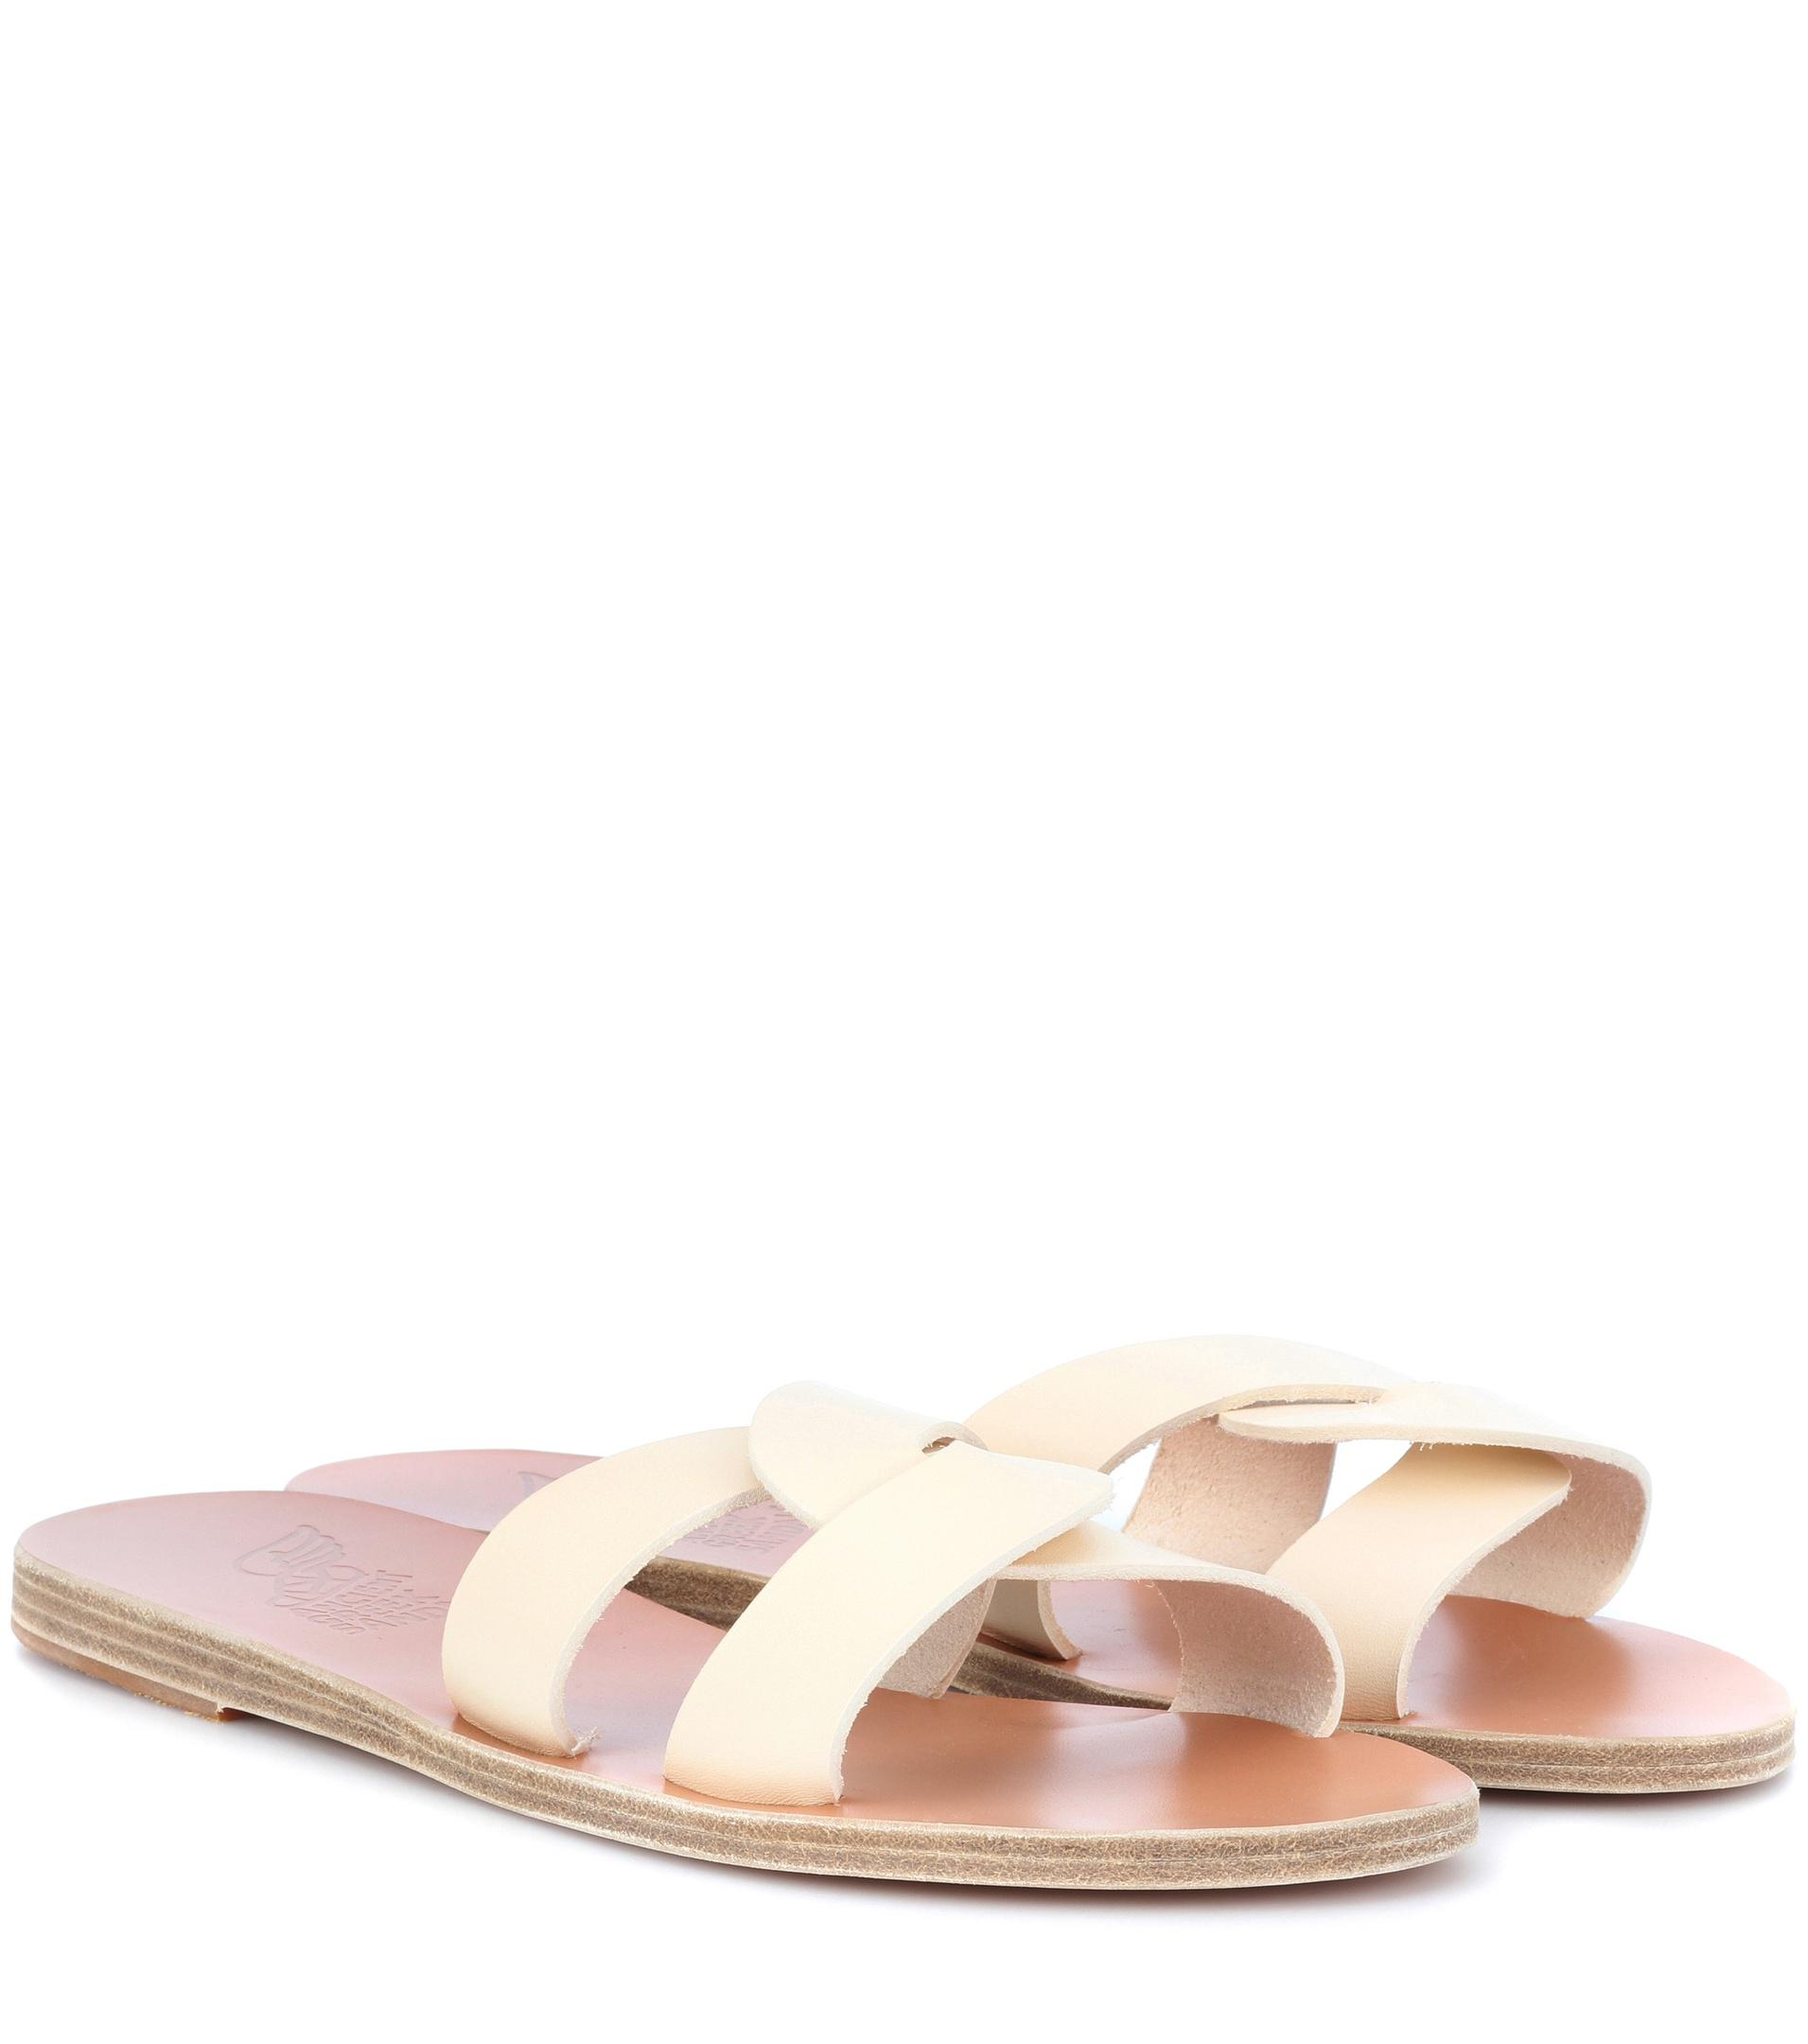 Clearance Inexpensive Clearance Collections Ancient Greek Sandals Desmos leather sandals 0napd